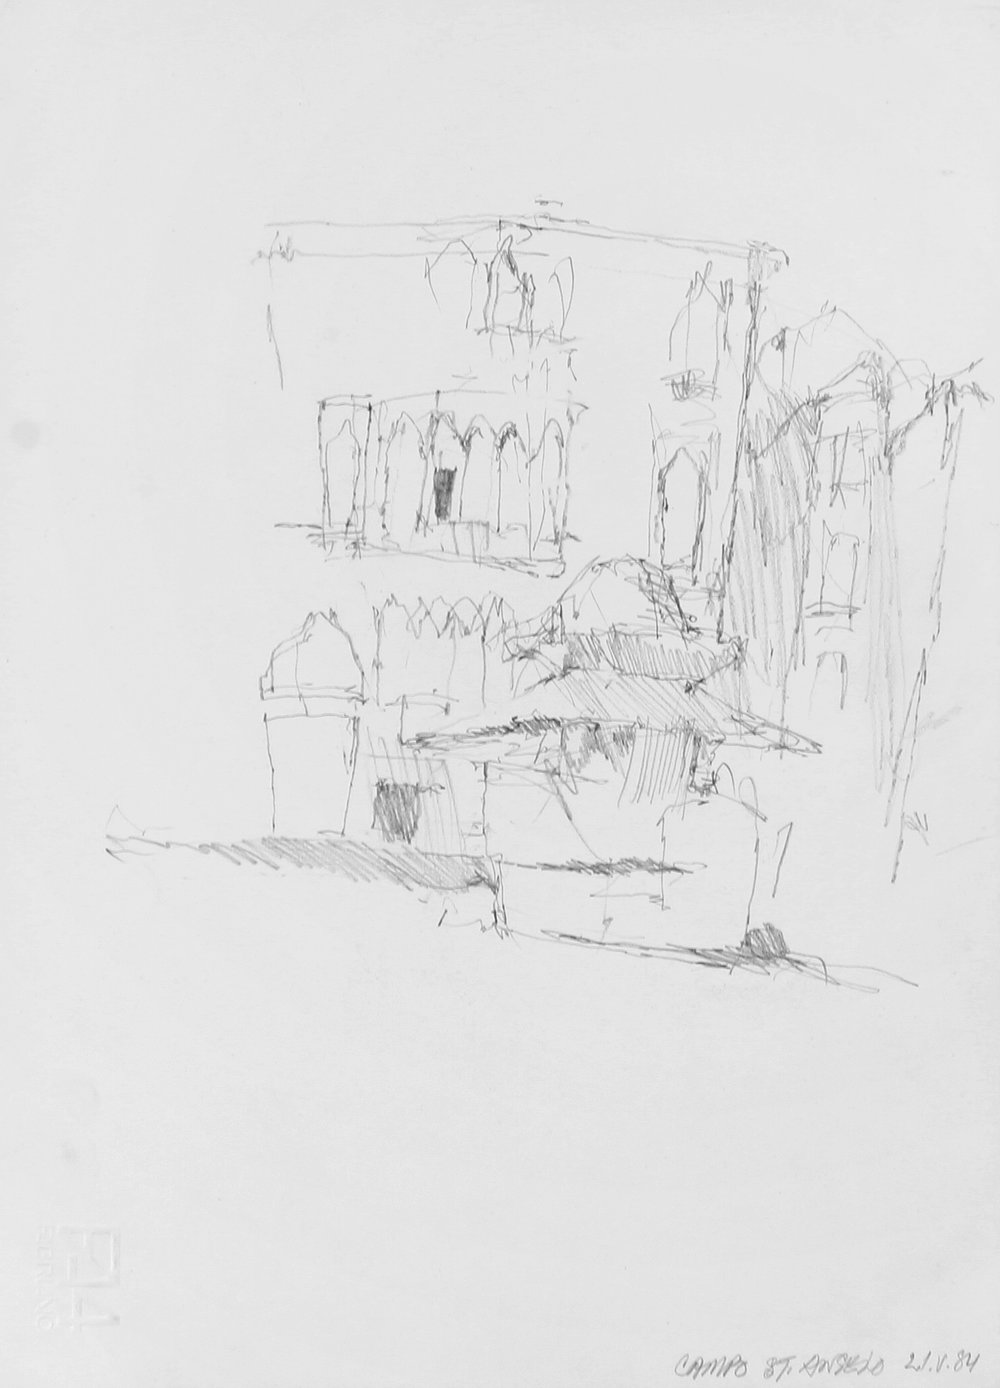 1984_Campo_S_Angelo_pencil_on_paper_13x9in_WPF072.jpg